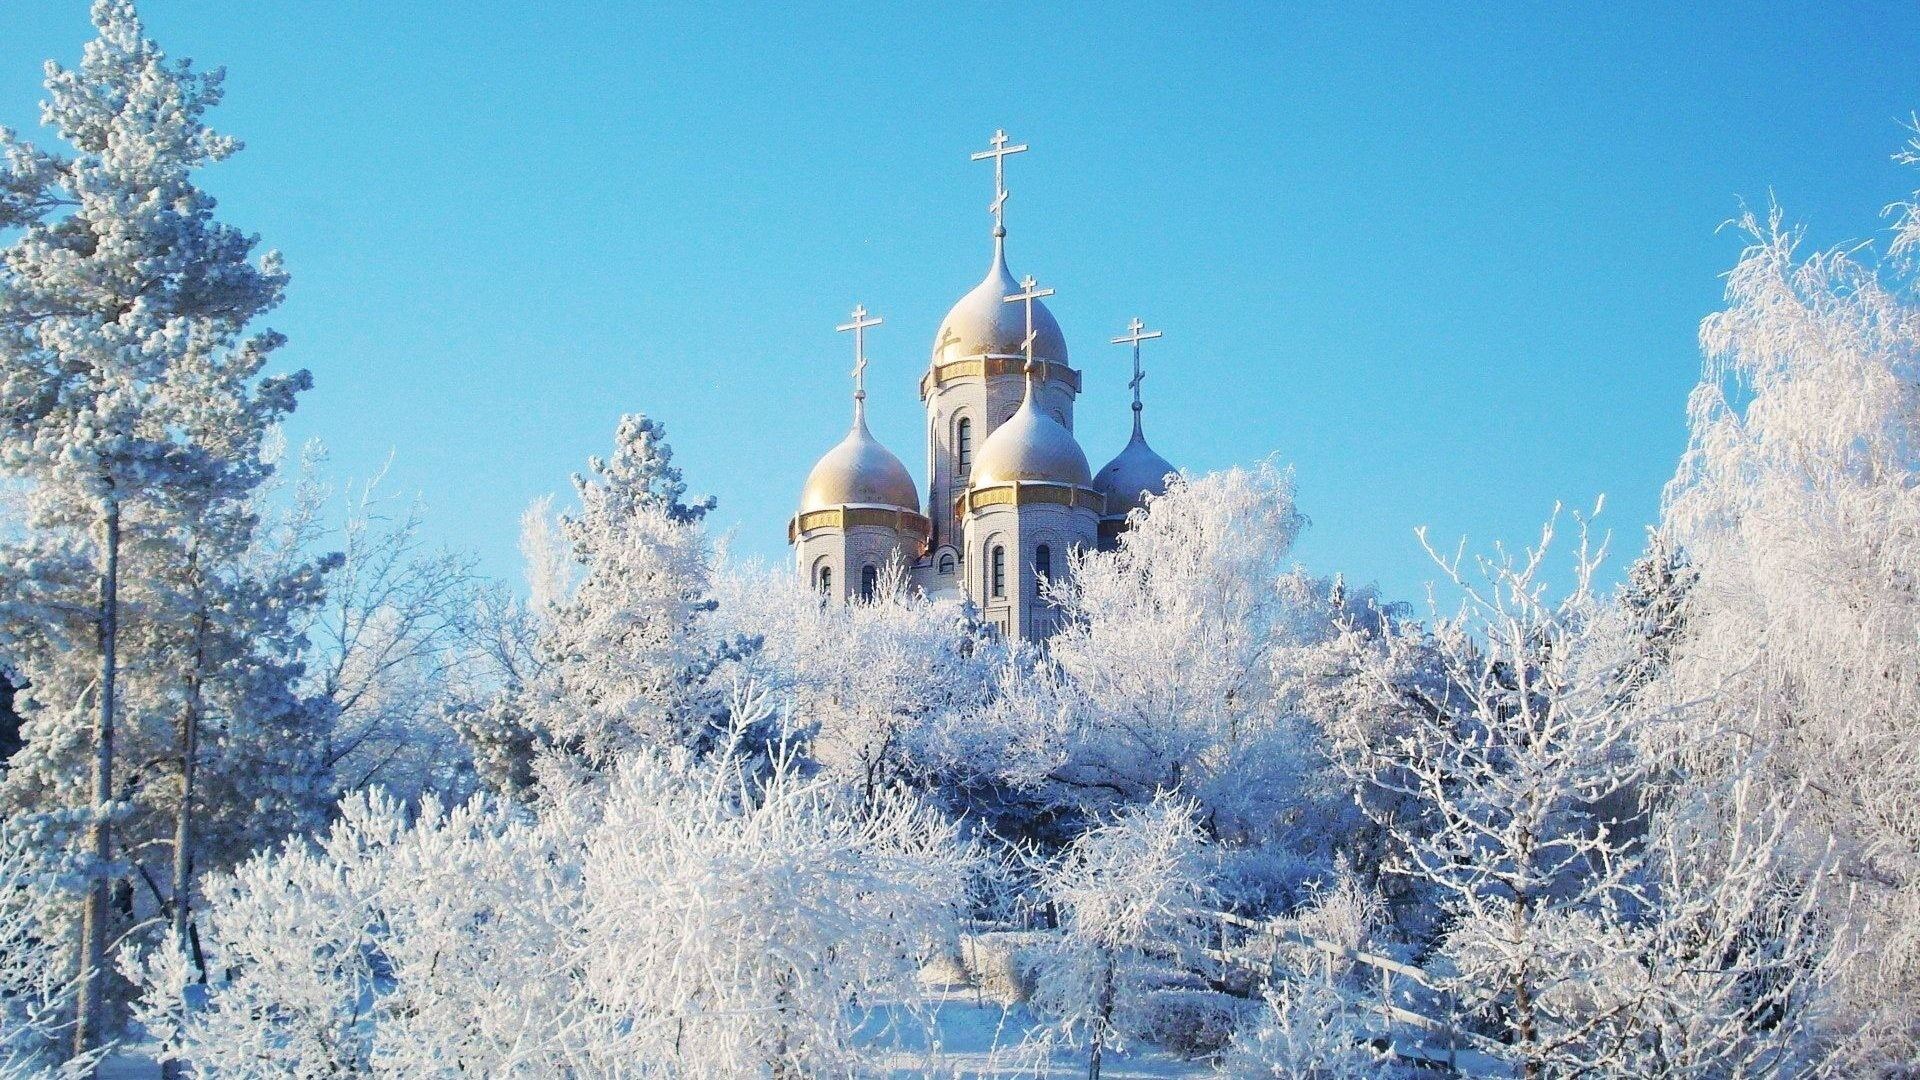 1920x1080 Church Winter Wonderland Snow Ice Building Nature Trees Best Wallpapers -  1920x1200